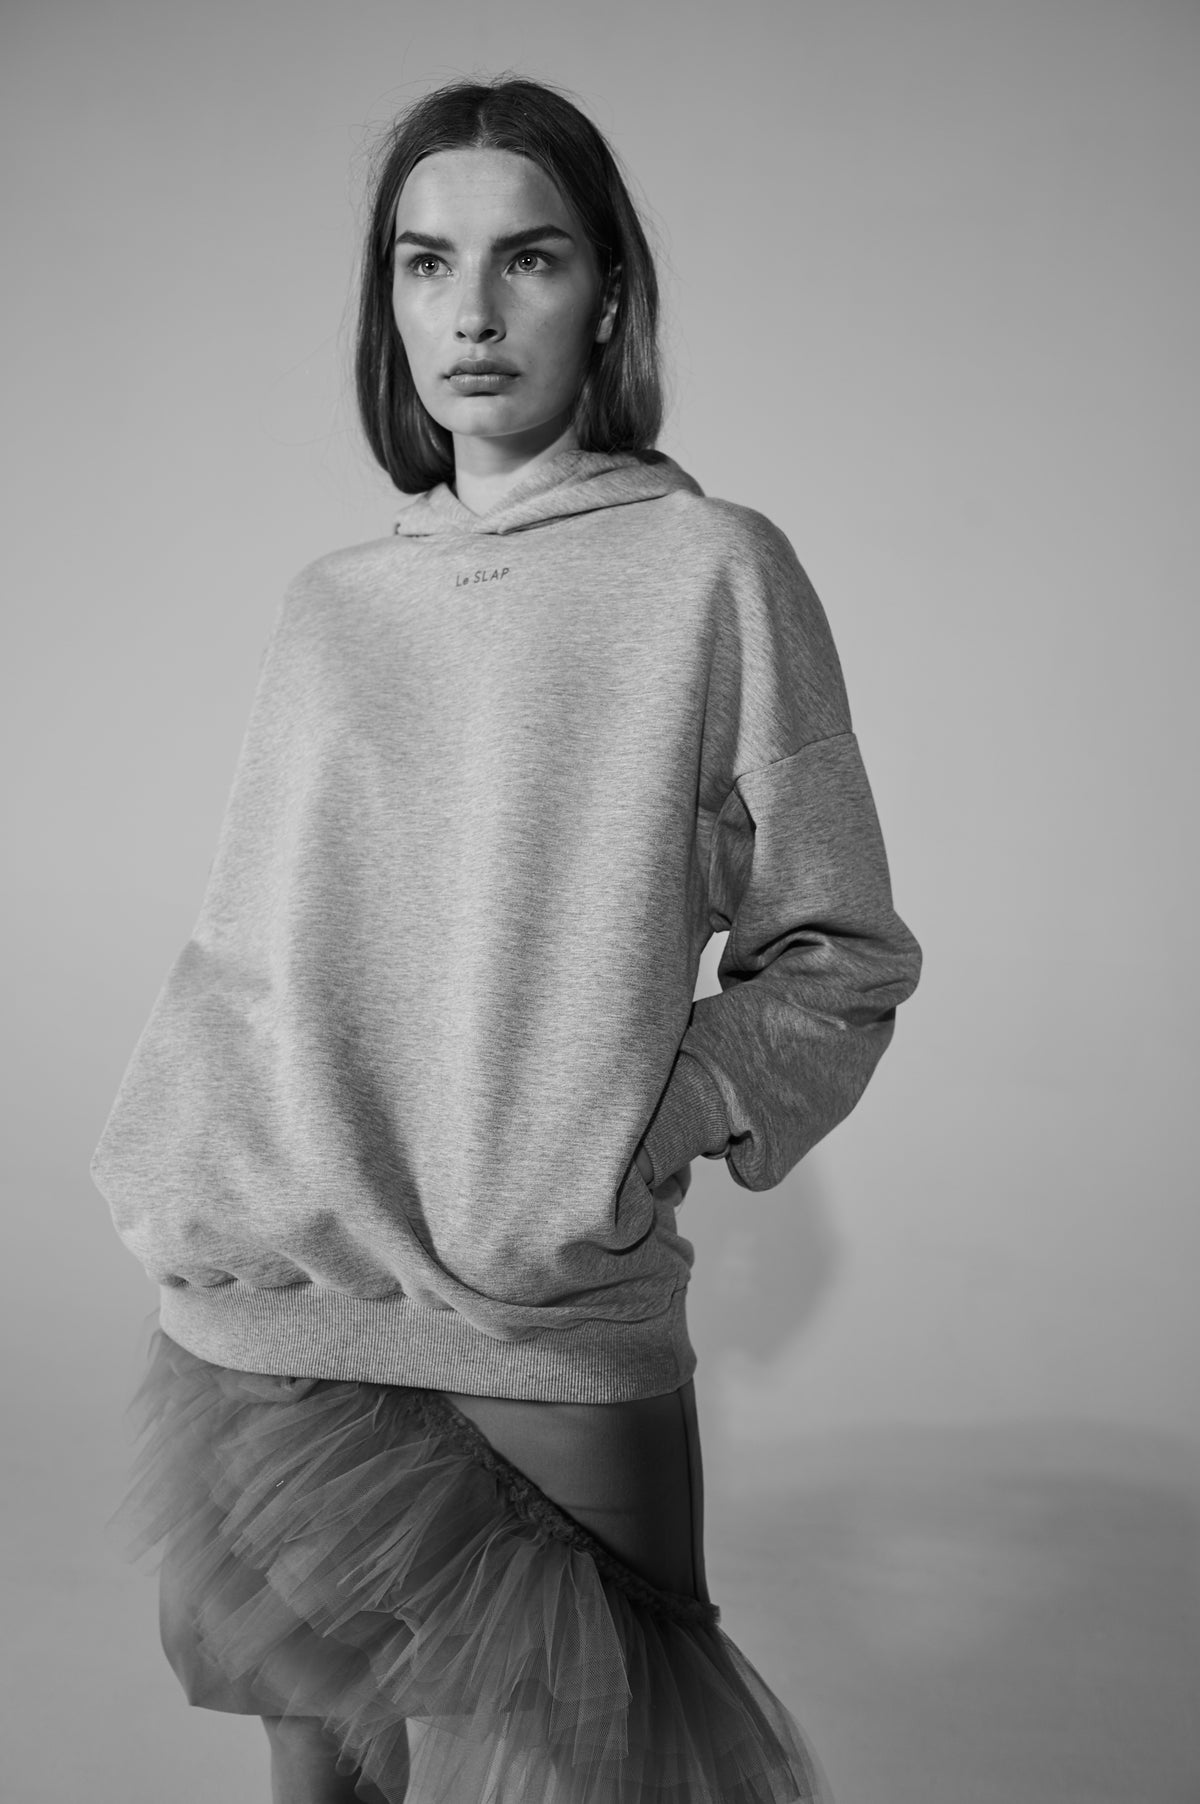 le-slap-lifetime-collection-grey-oversize-hoodie-with-wording.jpg